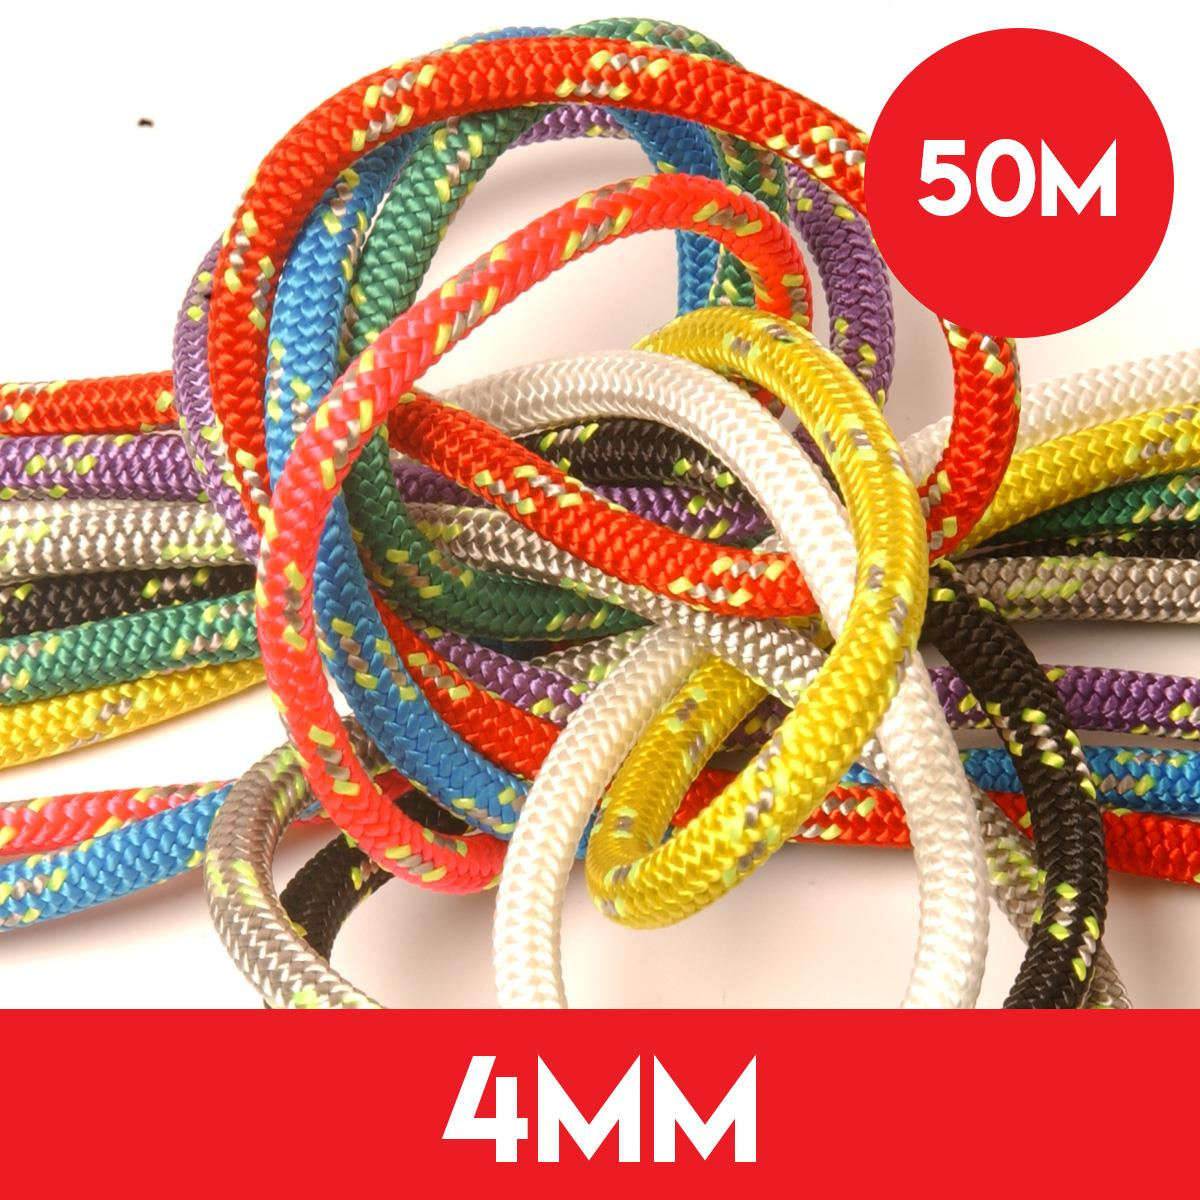 50m Reel of 4mm Kingfisher Evolution Race Rope